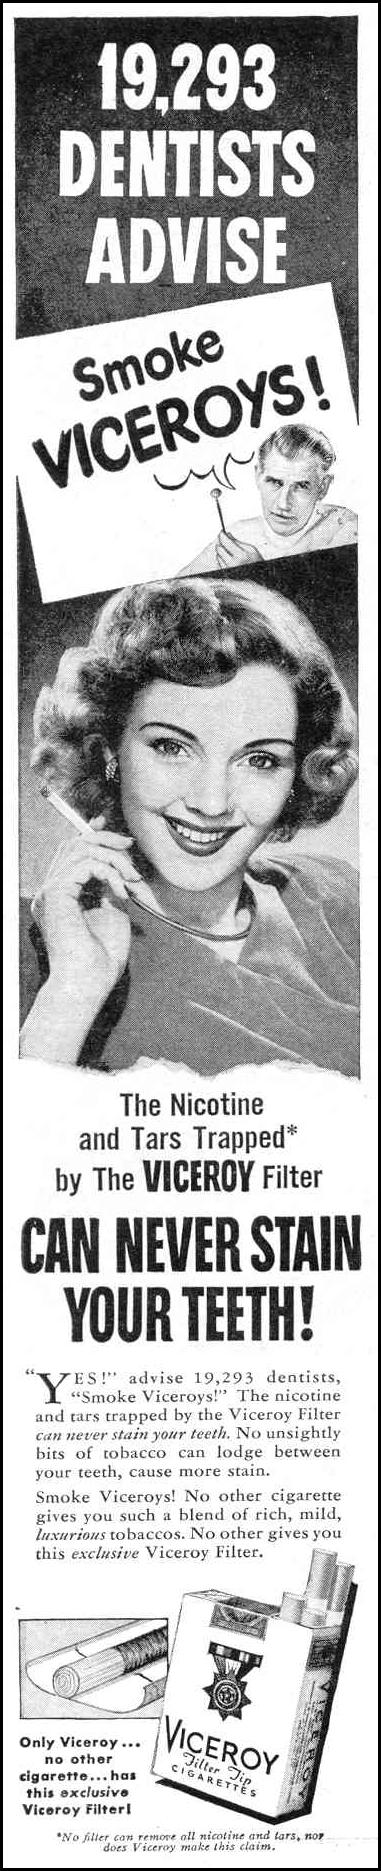 VICEROY CIGARETTES LIFE 10/27/1947 p. 152